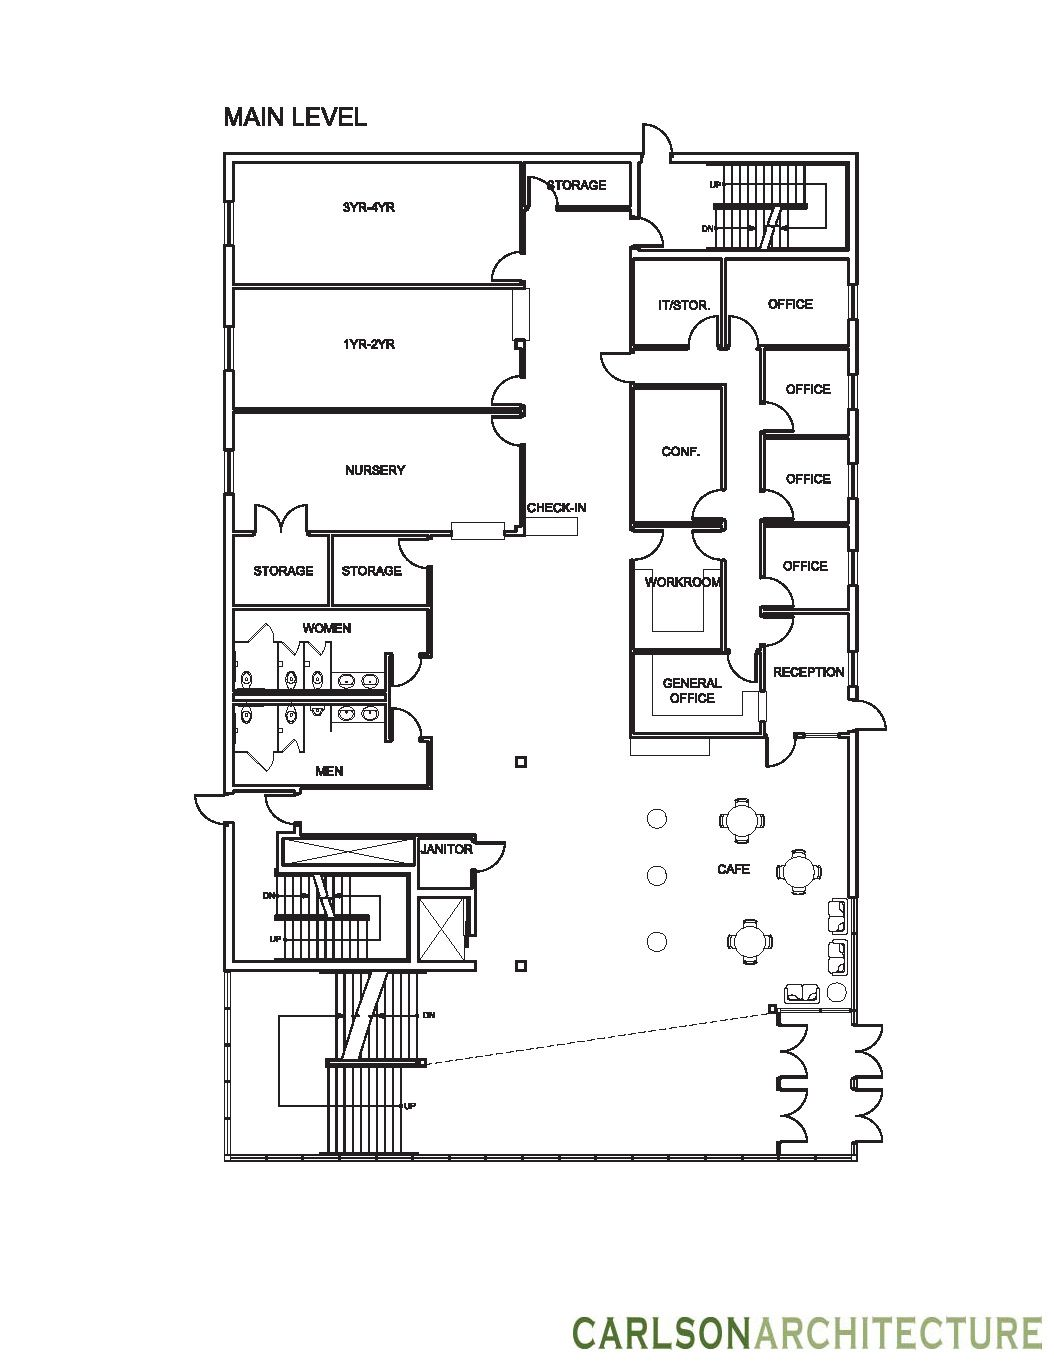 Church building plan with lobby, church offices, and